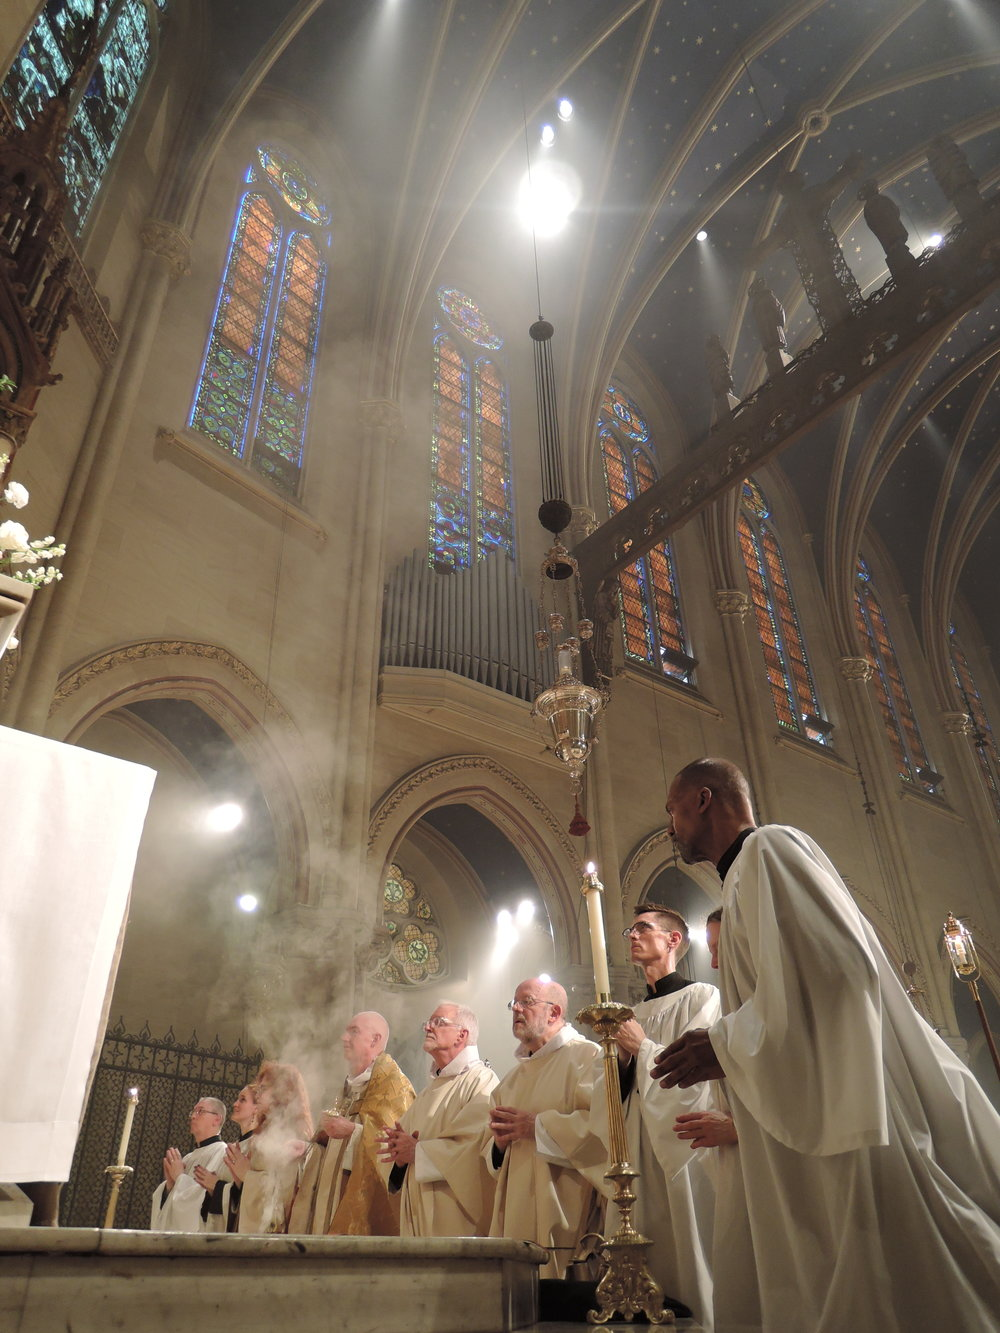 Incense is offered before the Eucharistic blessing is given.